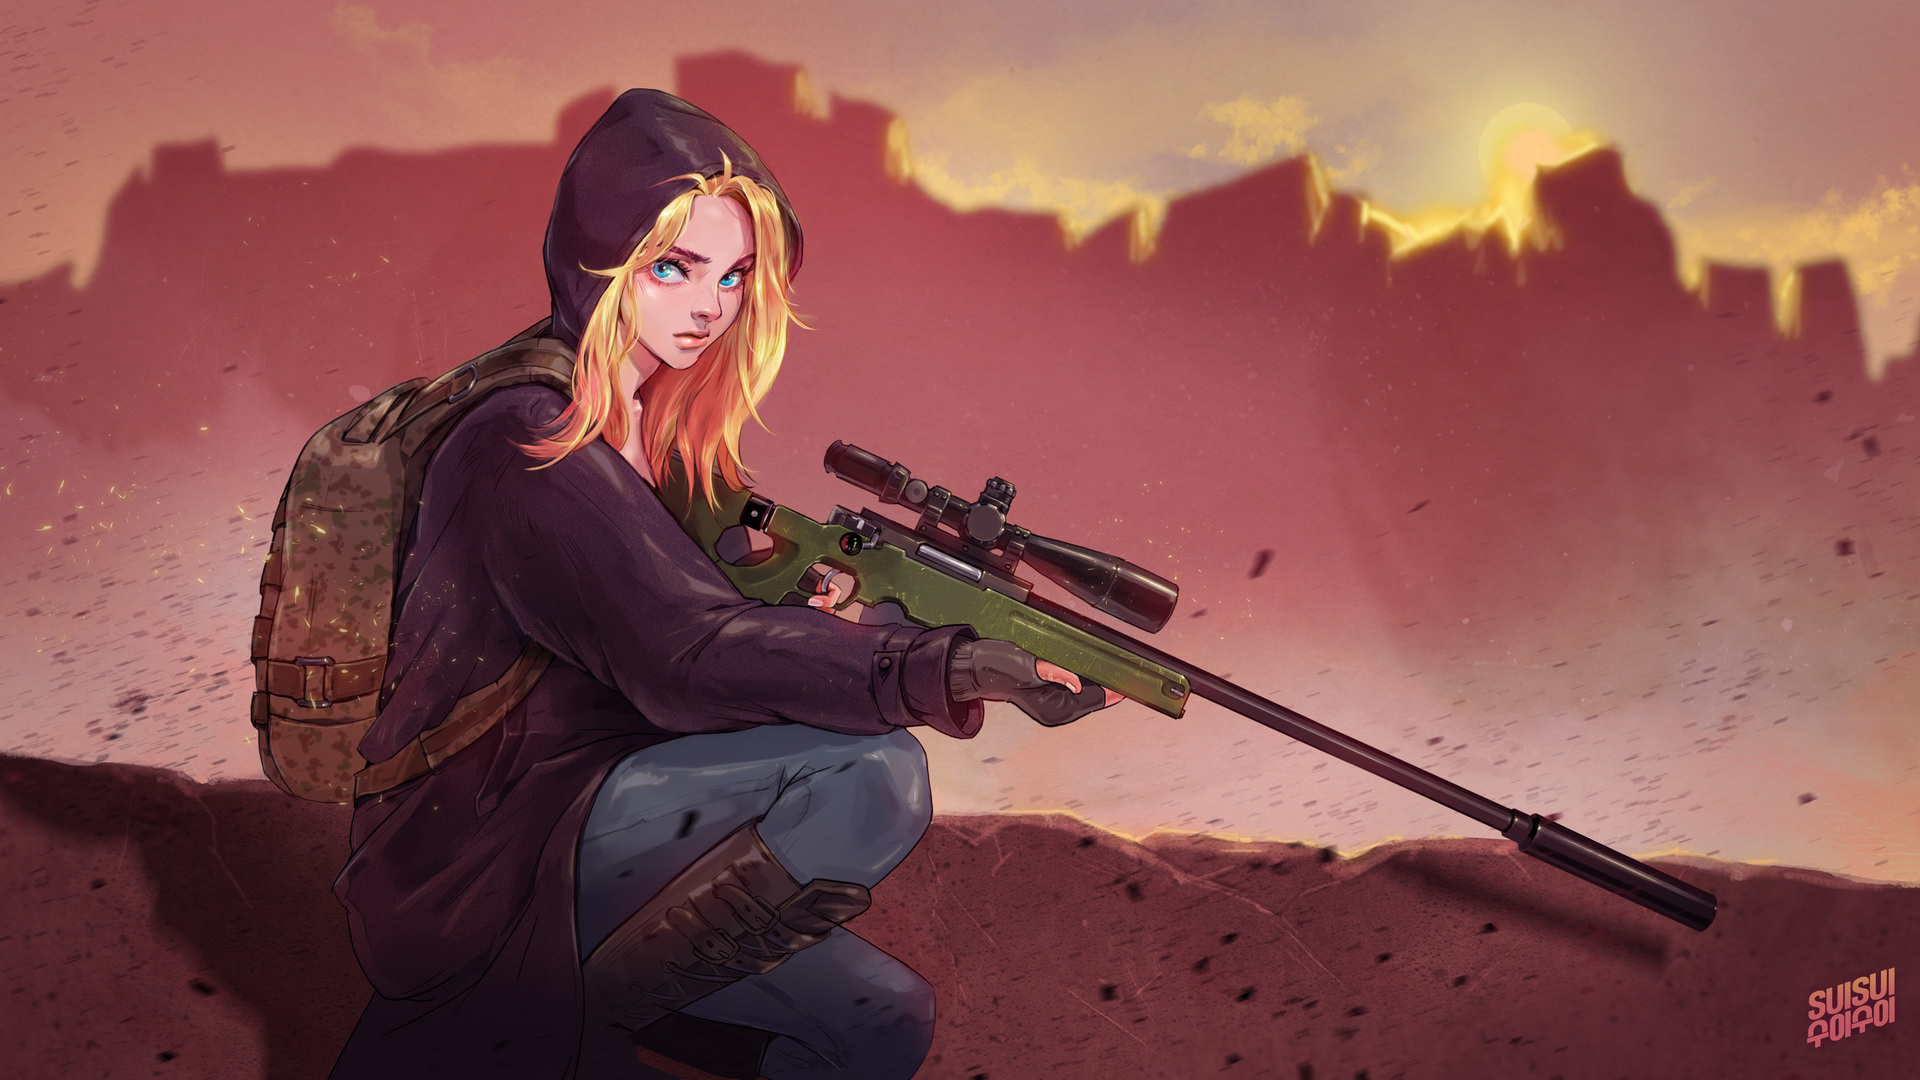 1920x1080 Pubg Game Girl Fanart Laptop Full Hd 1080p Hd 4k